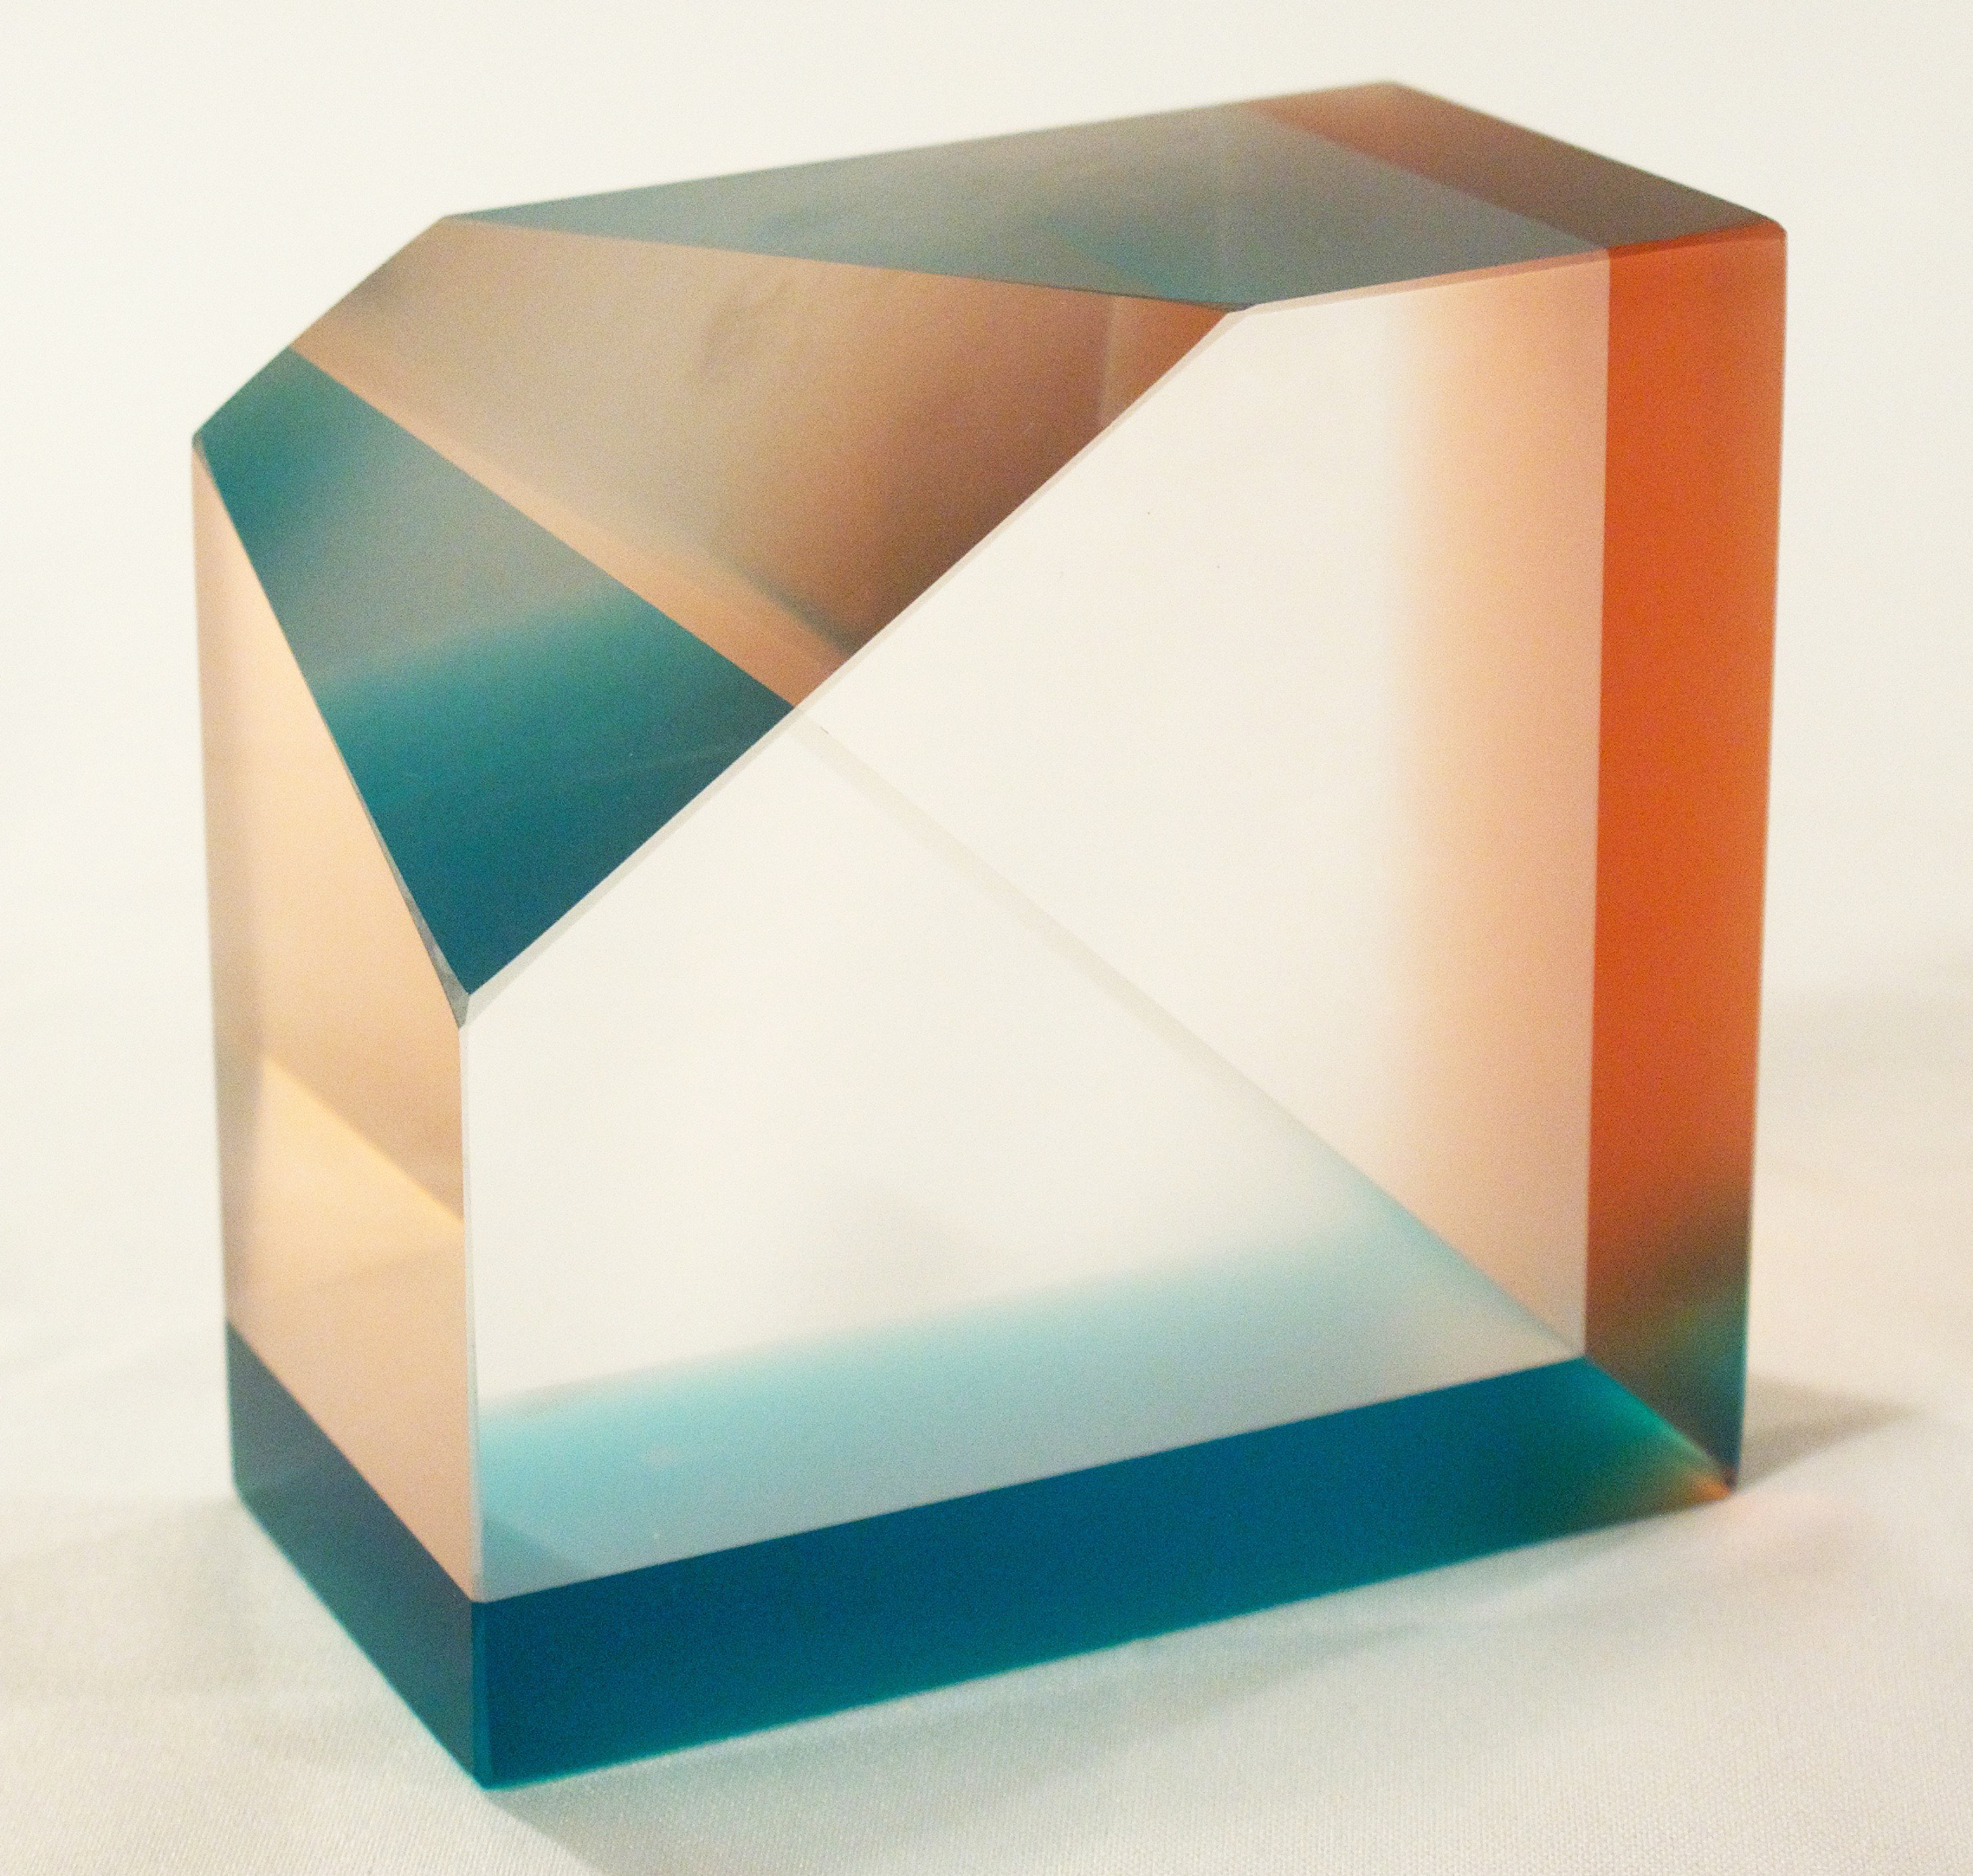 cold-worked optical glass  assembled  2015  donated to CMoG